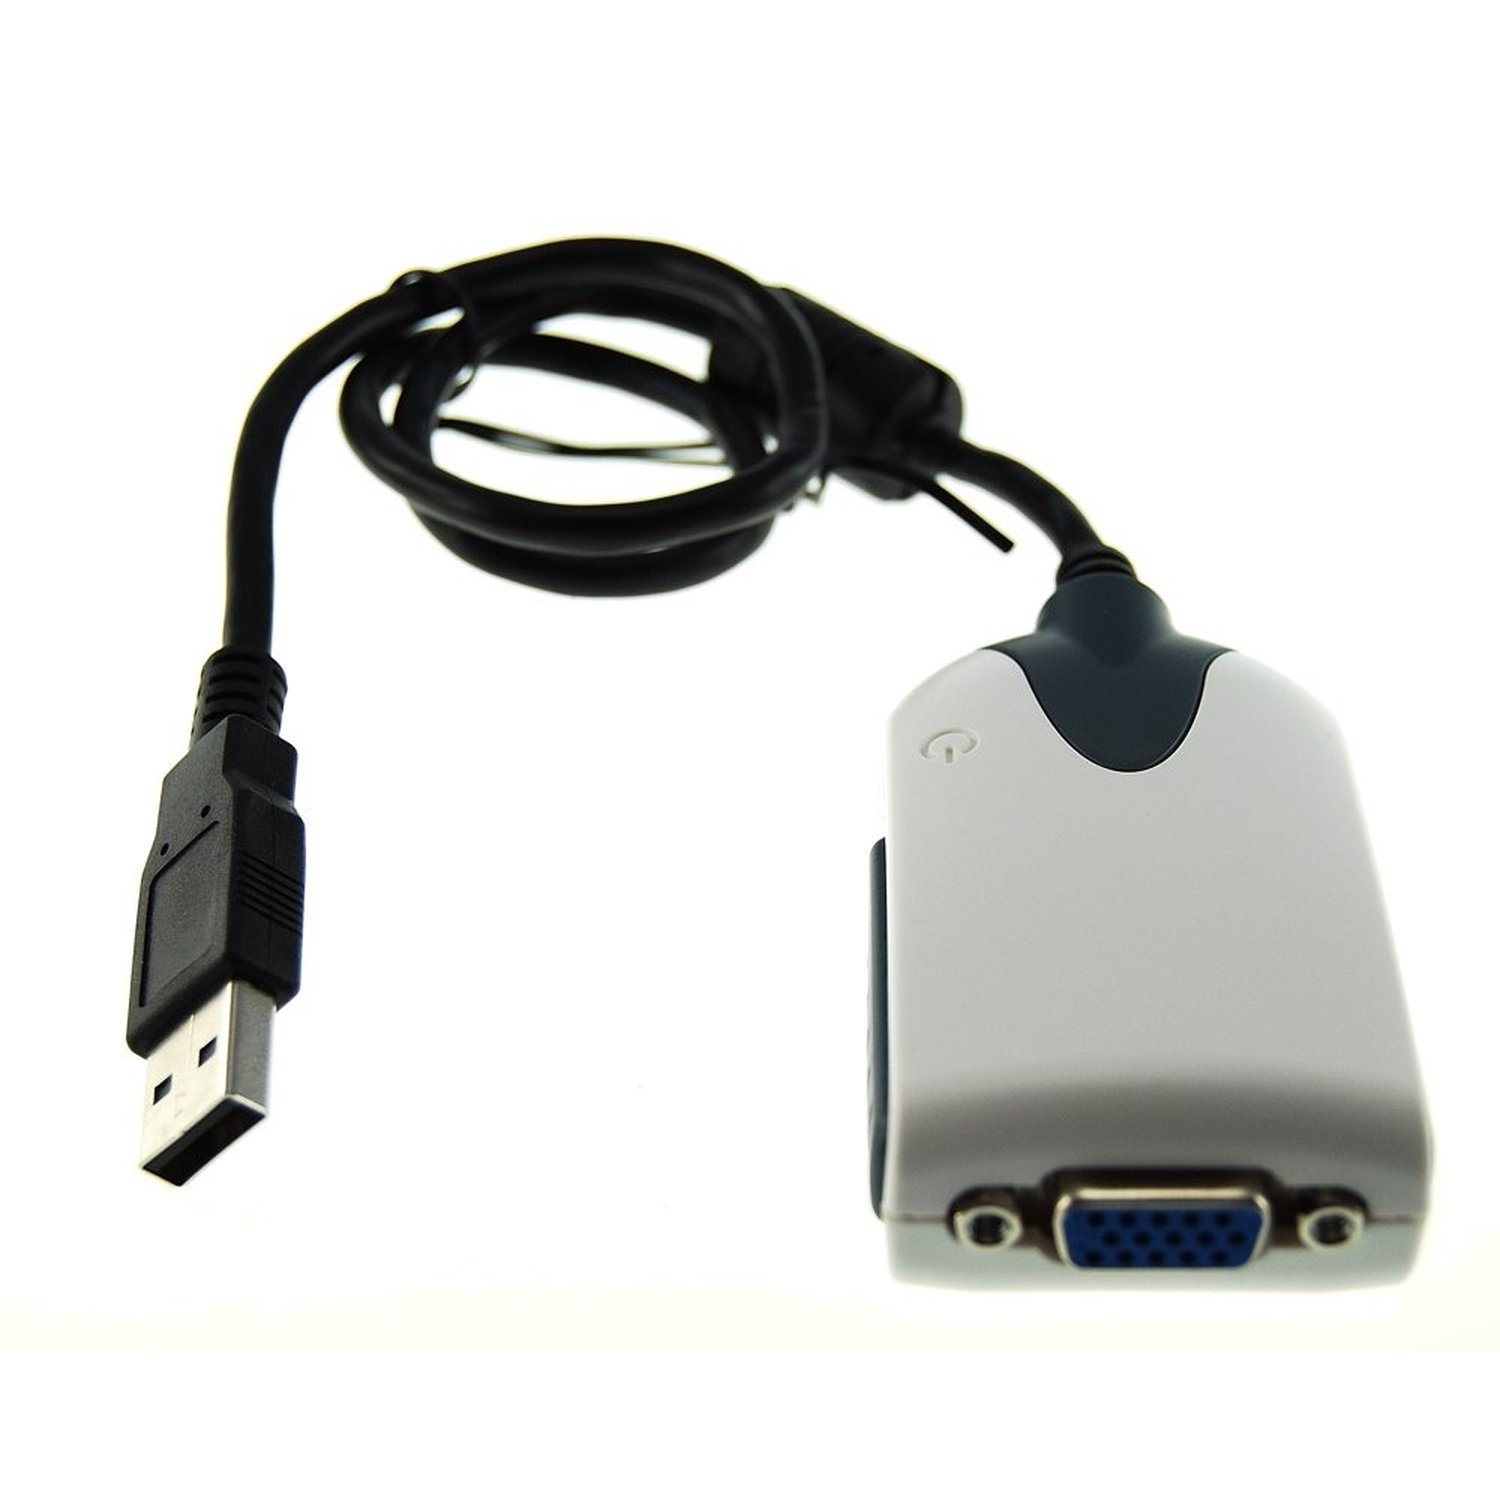 Usb to VGA adapter cy hd 106 hdmi male to vga adapter cable w audio jack micro usb black golden 12cm